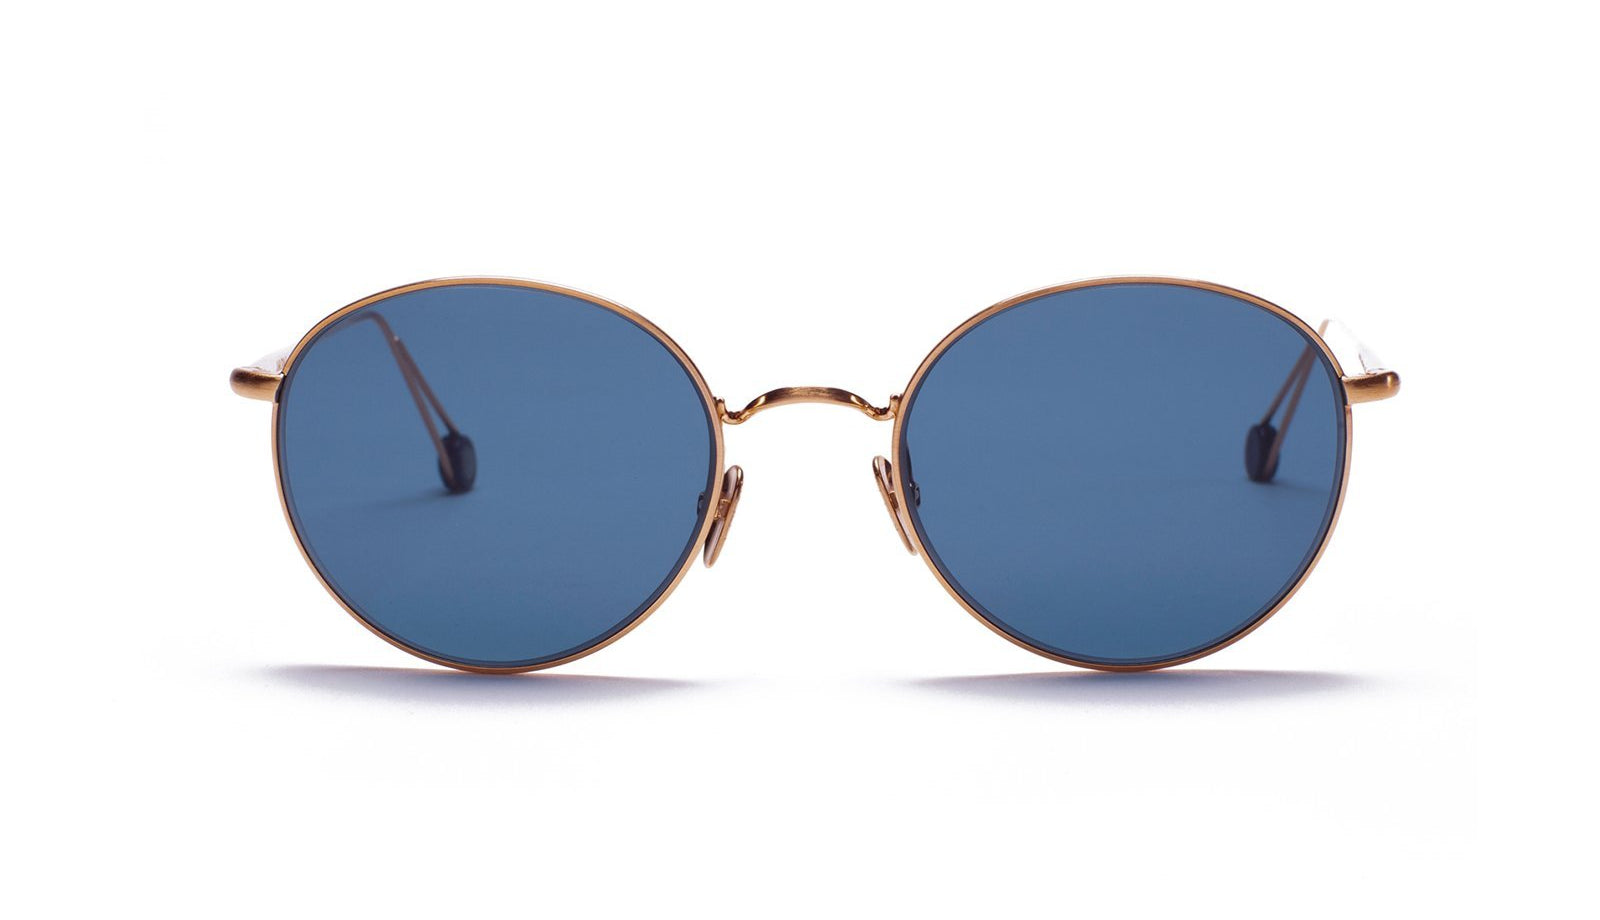 Ahlem Place de l'Opera Sunglasses Rose Gold